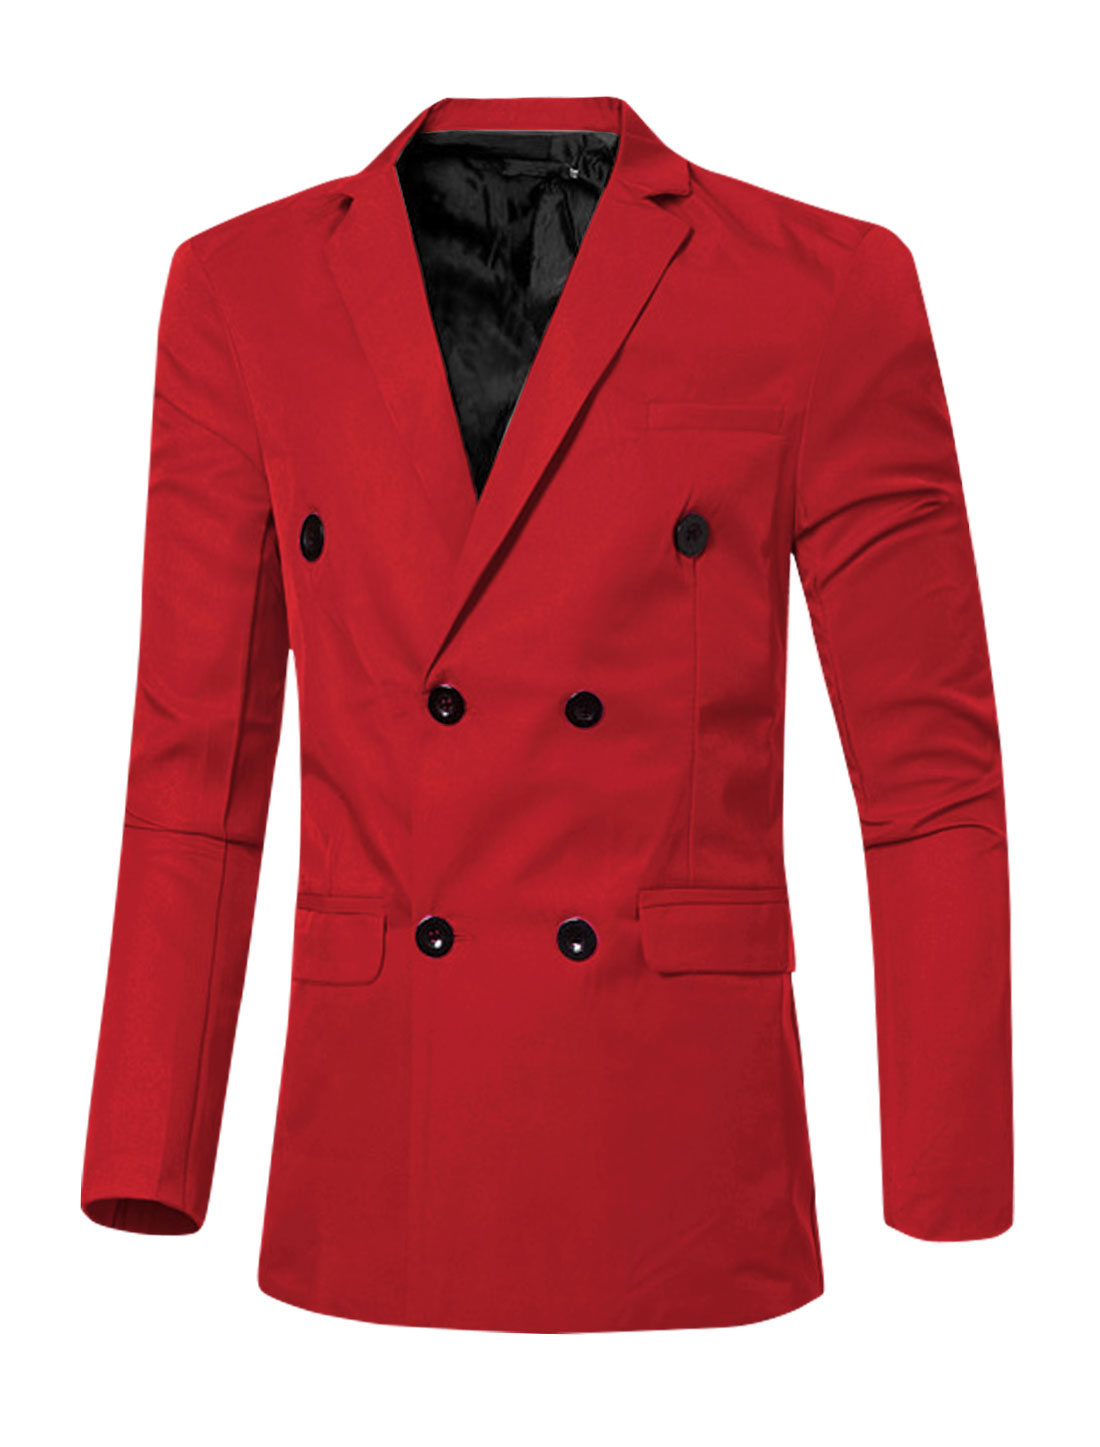 Men Notched Lapel Flap Pockets Double Breasted Blazer Red M